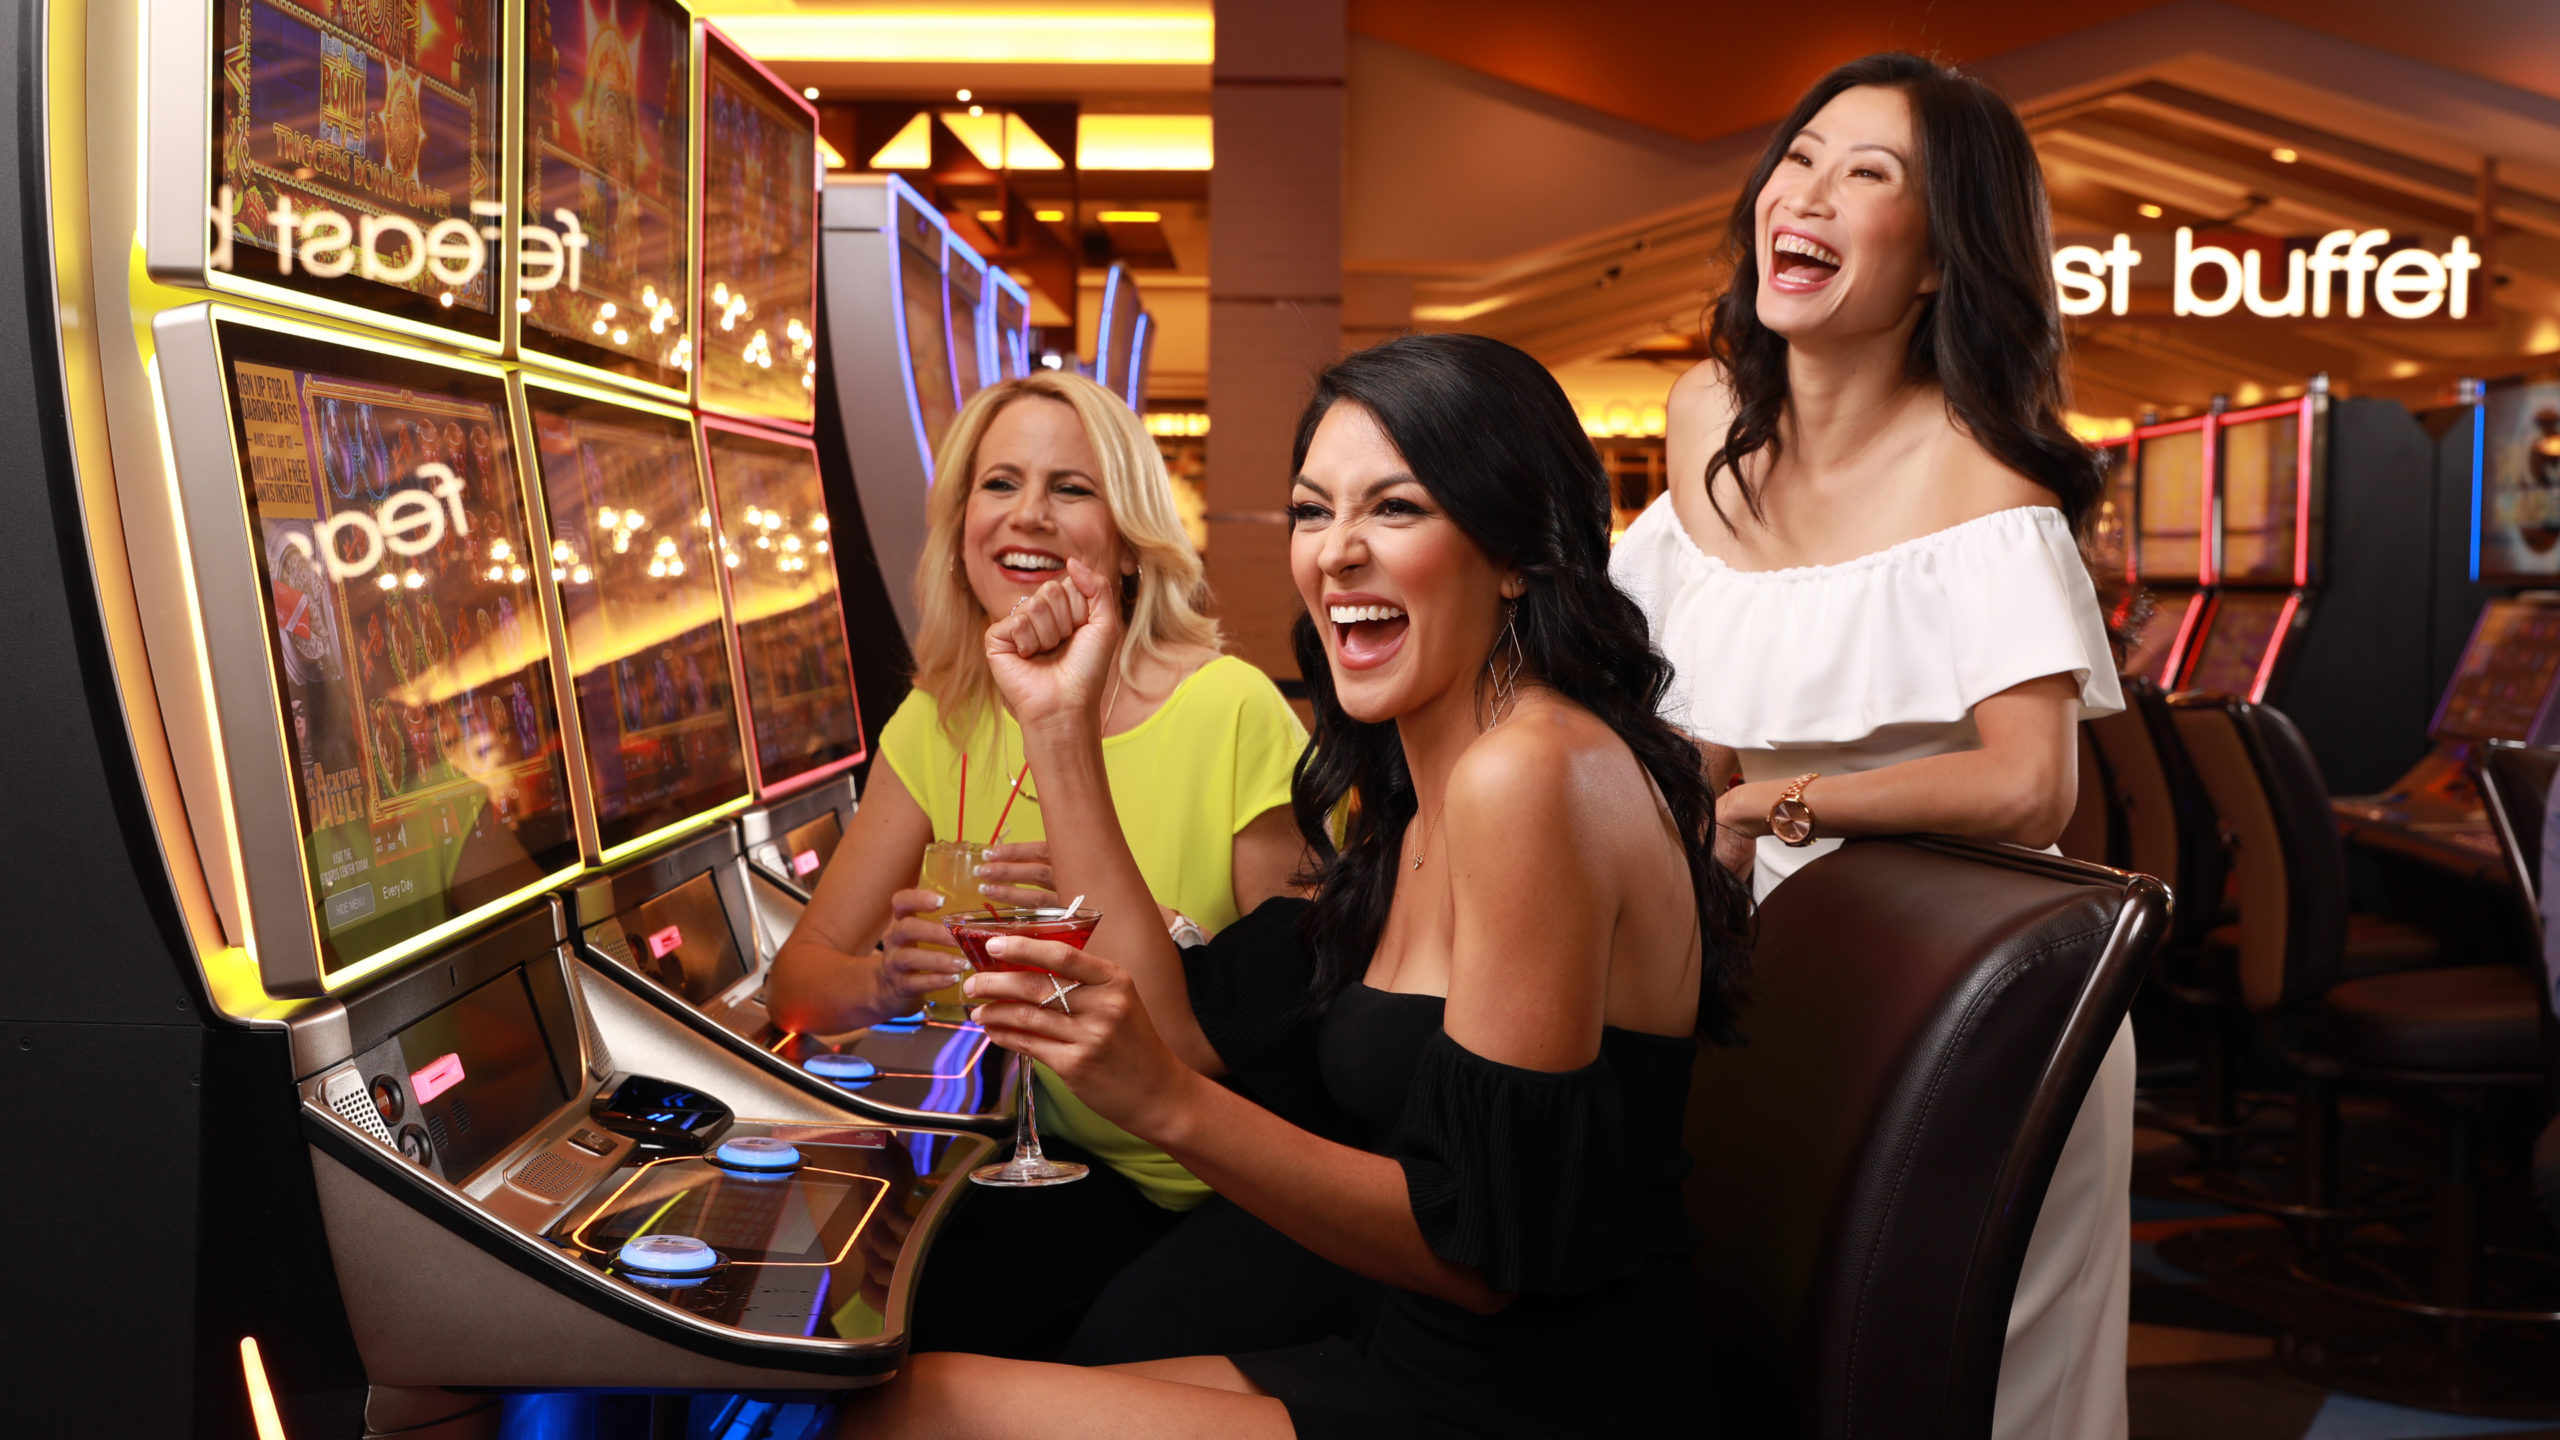 Three Women Cheering at a slot machine